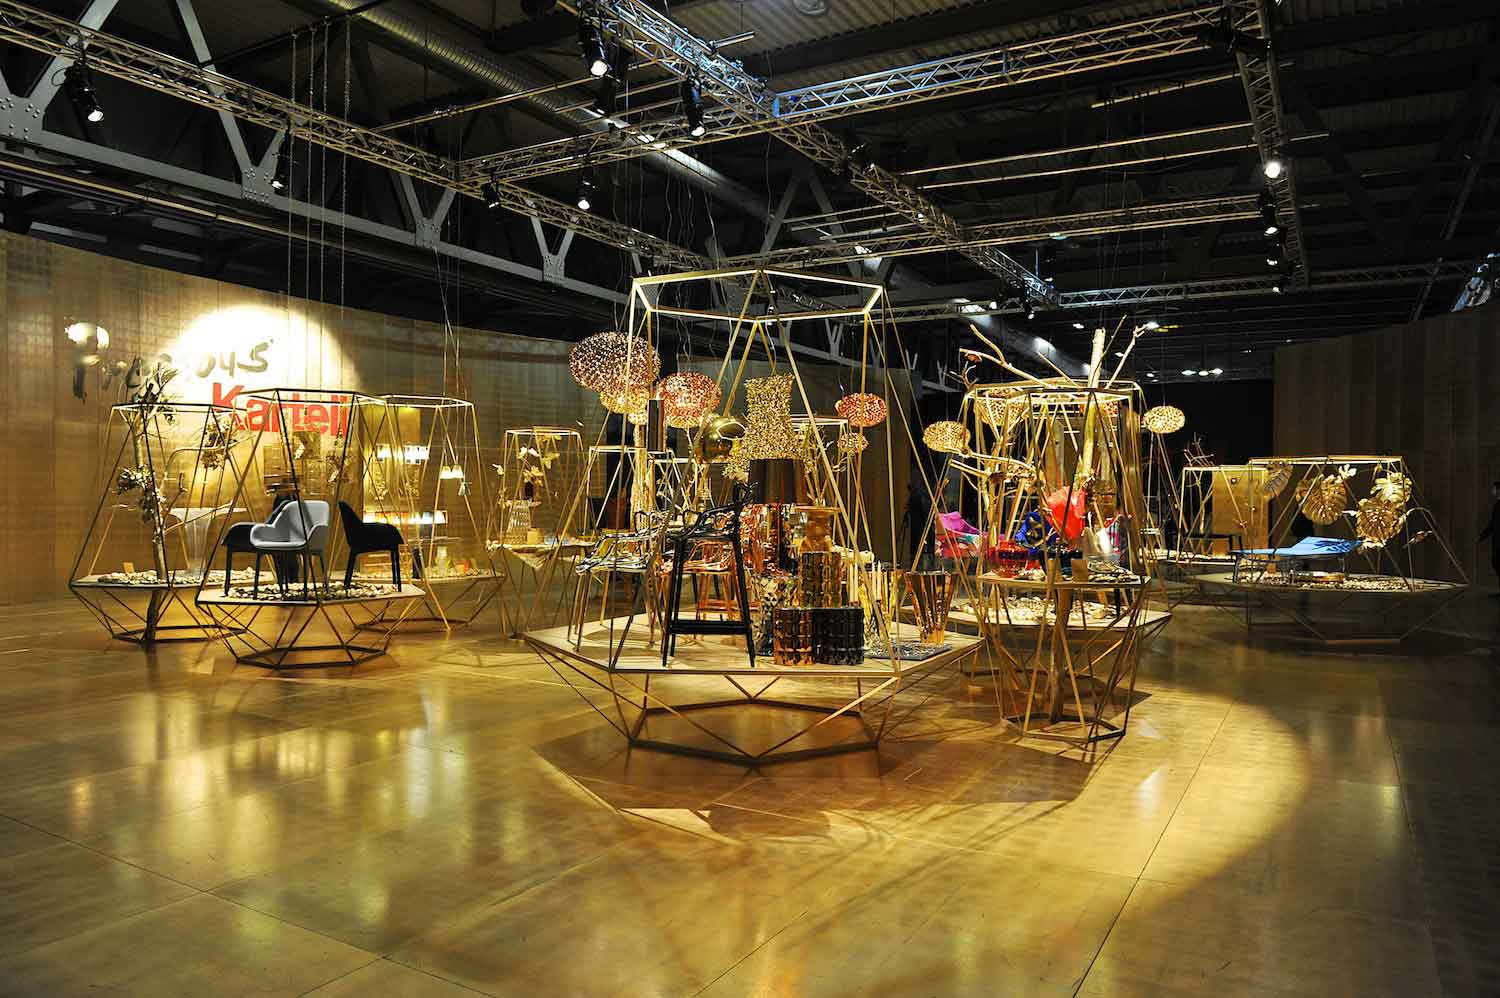 Salone Del Mobile 2015 (Milan International Furniture Fair).